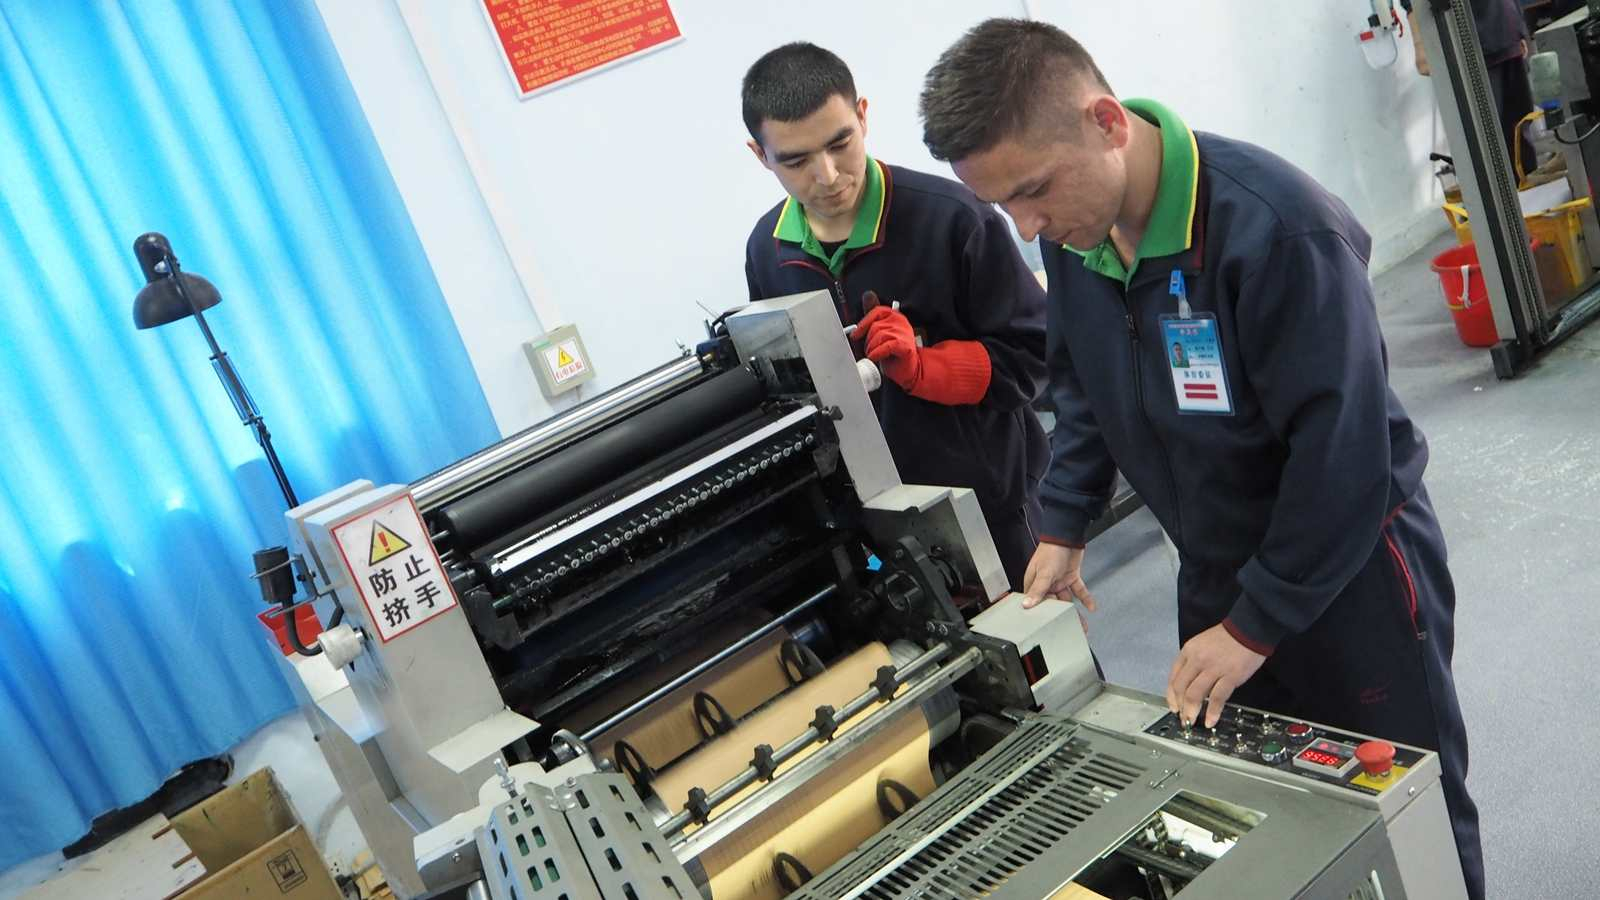 Xinjiang denies detaining foreign nationals in vocational training centers